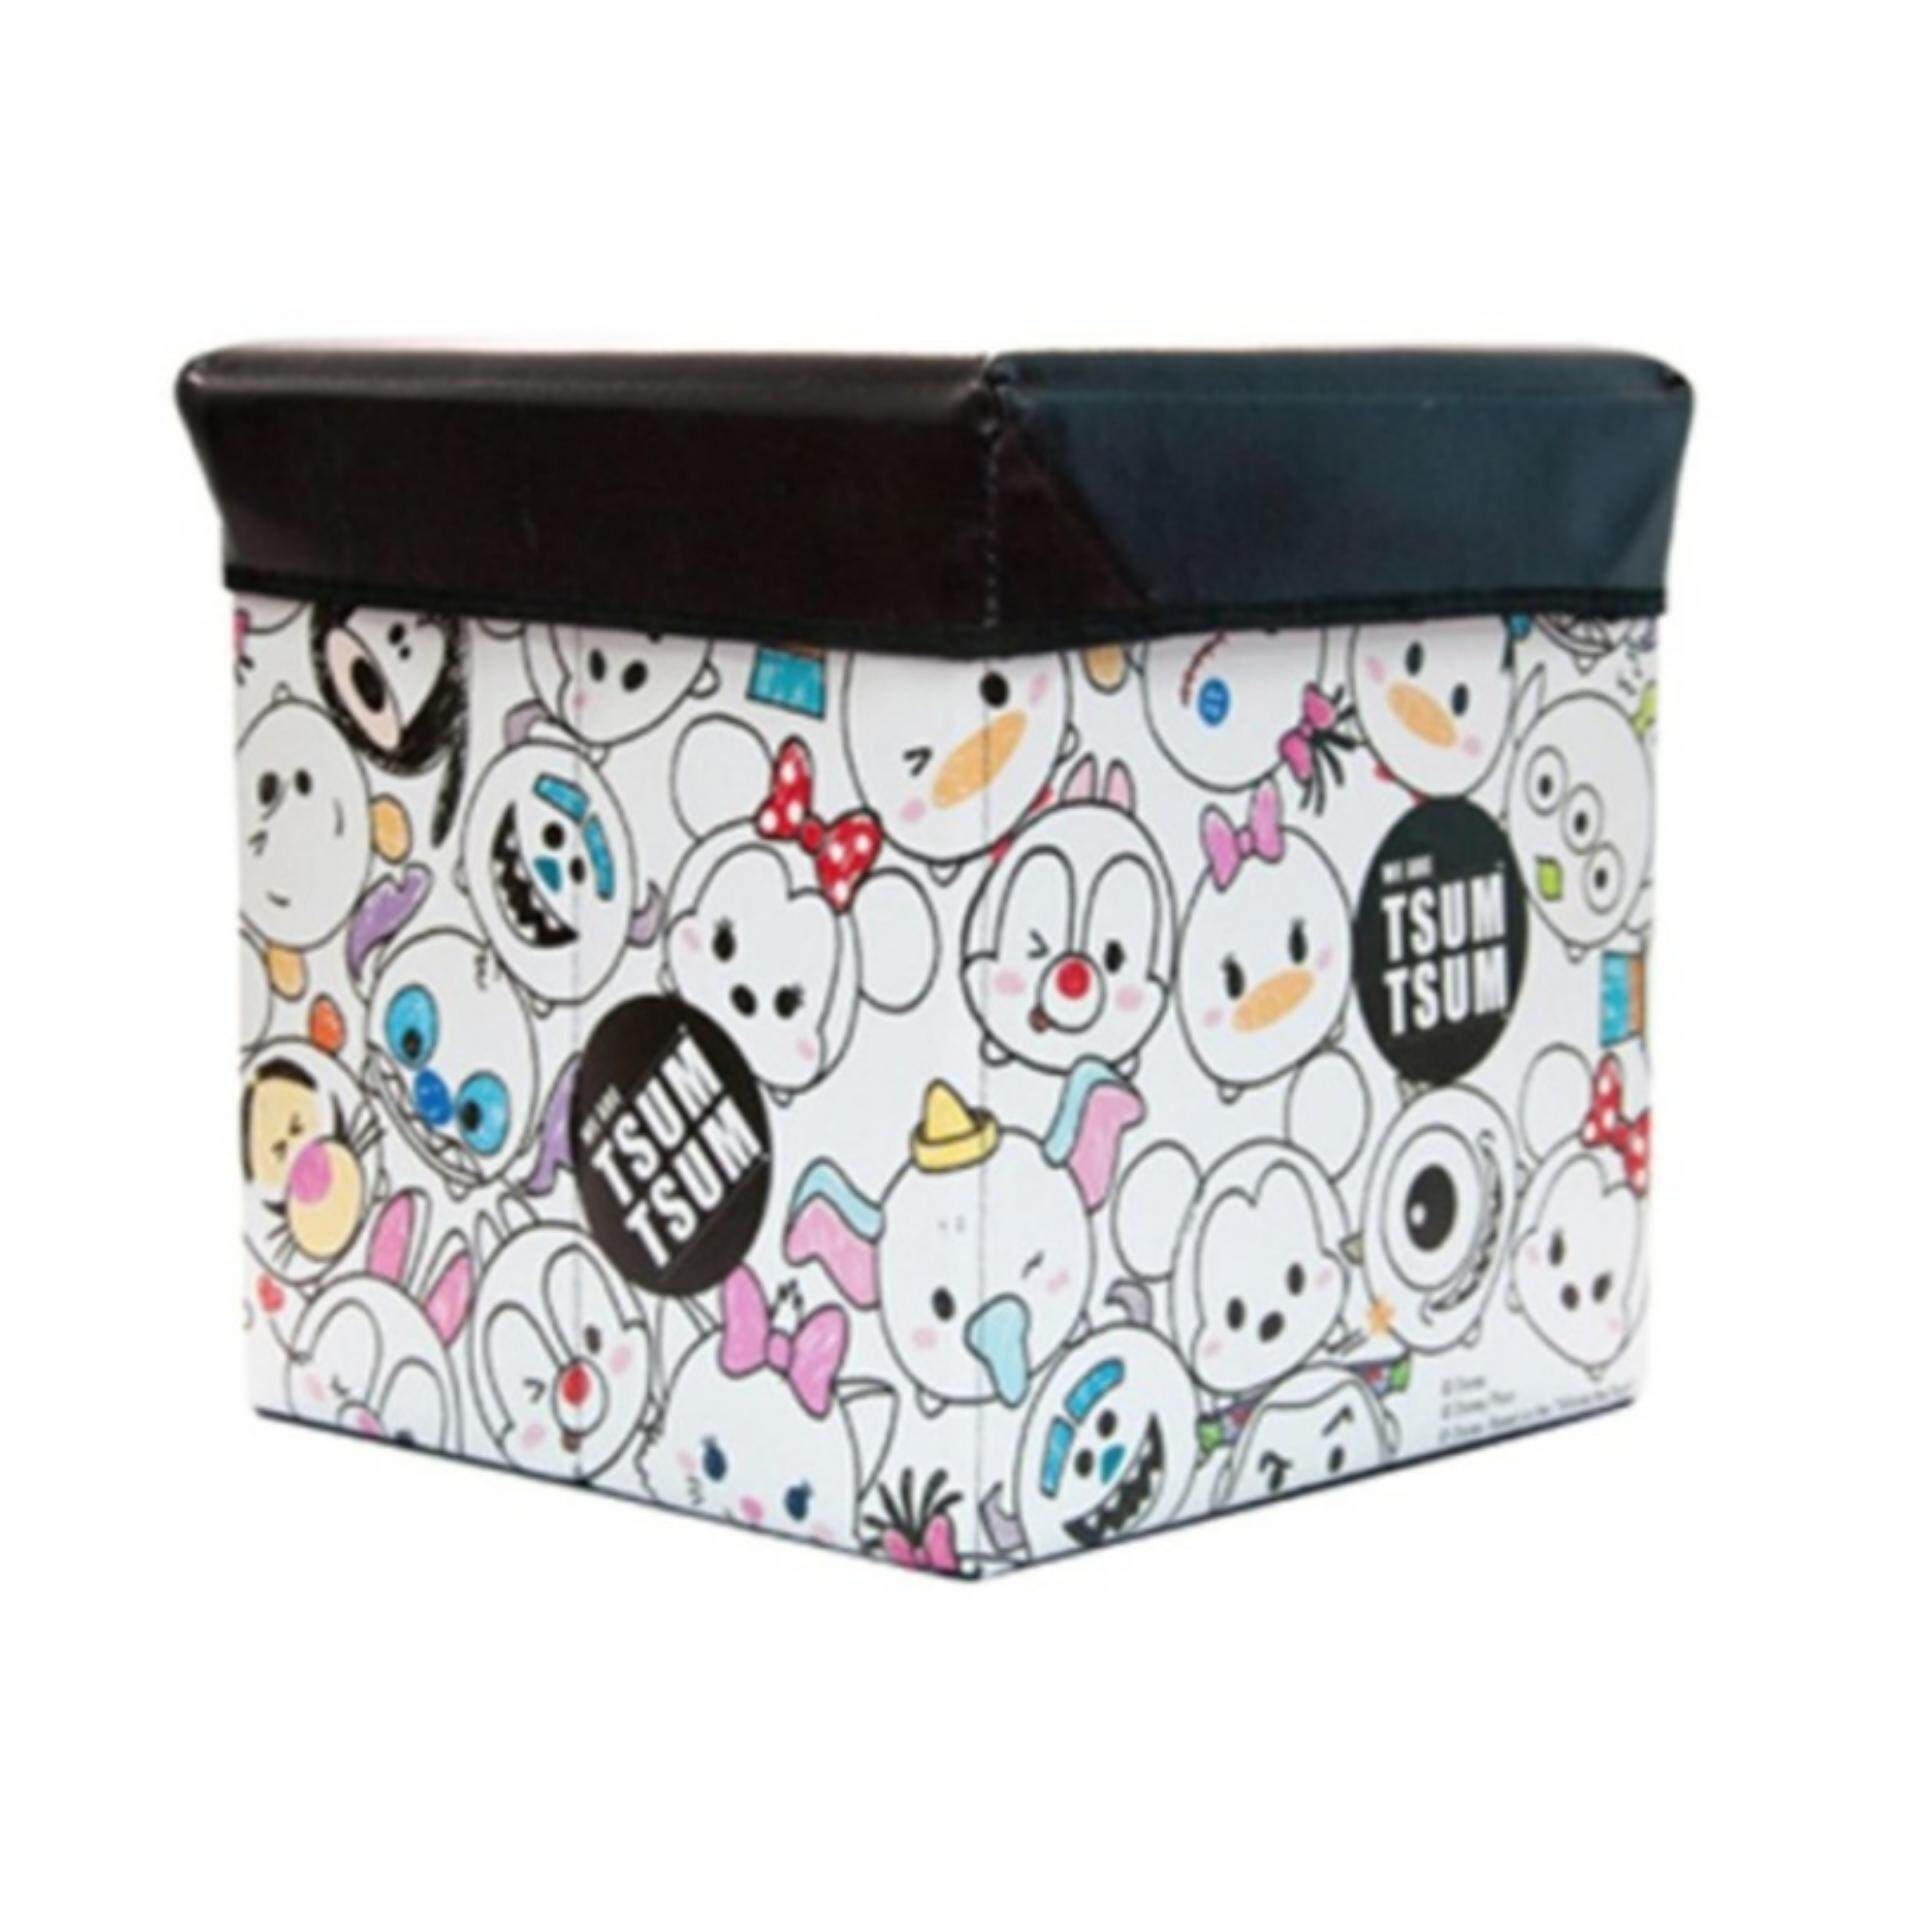 Disney Tsum Tsum Storage Box - Black Colour